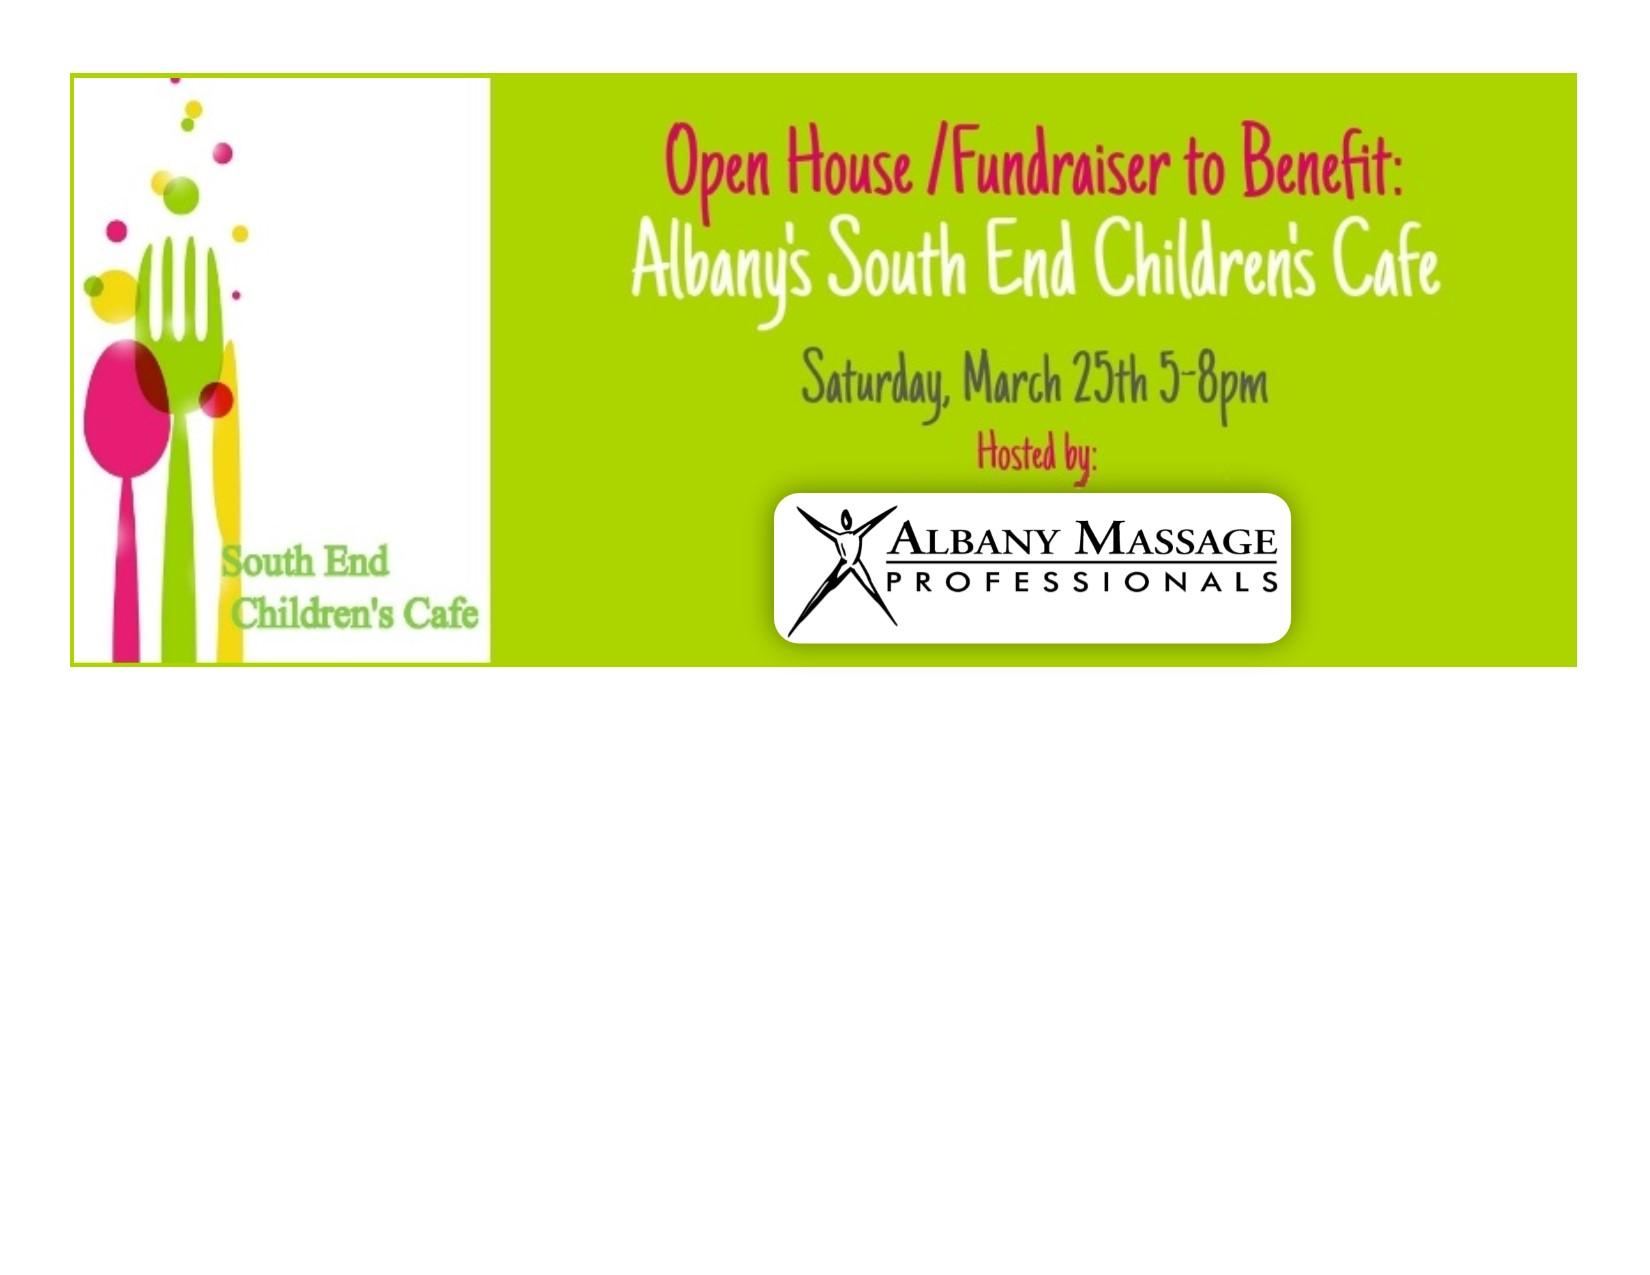 Fundraiser/ Open House for South End Children